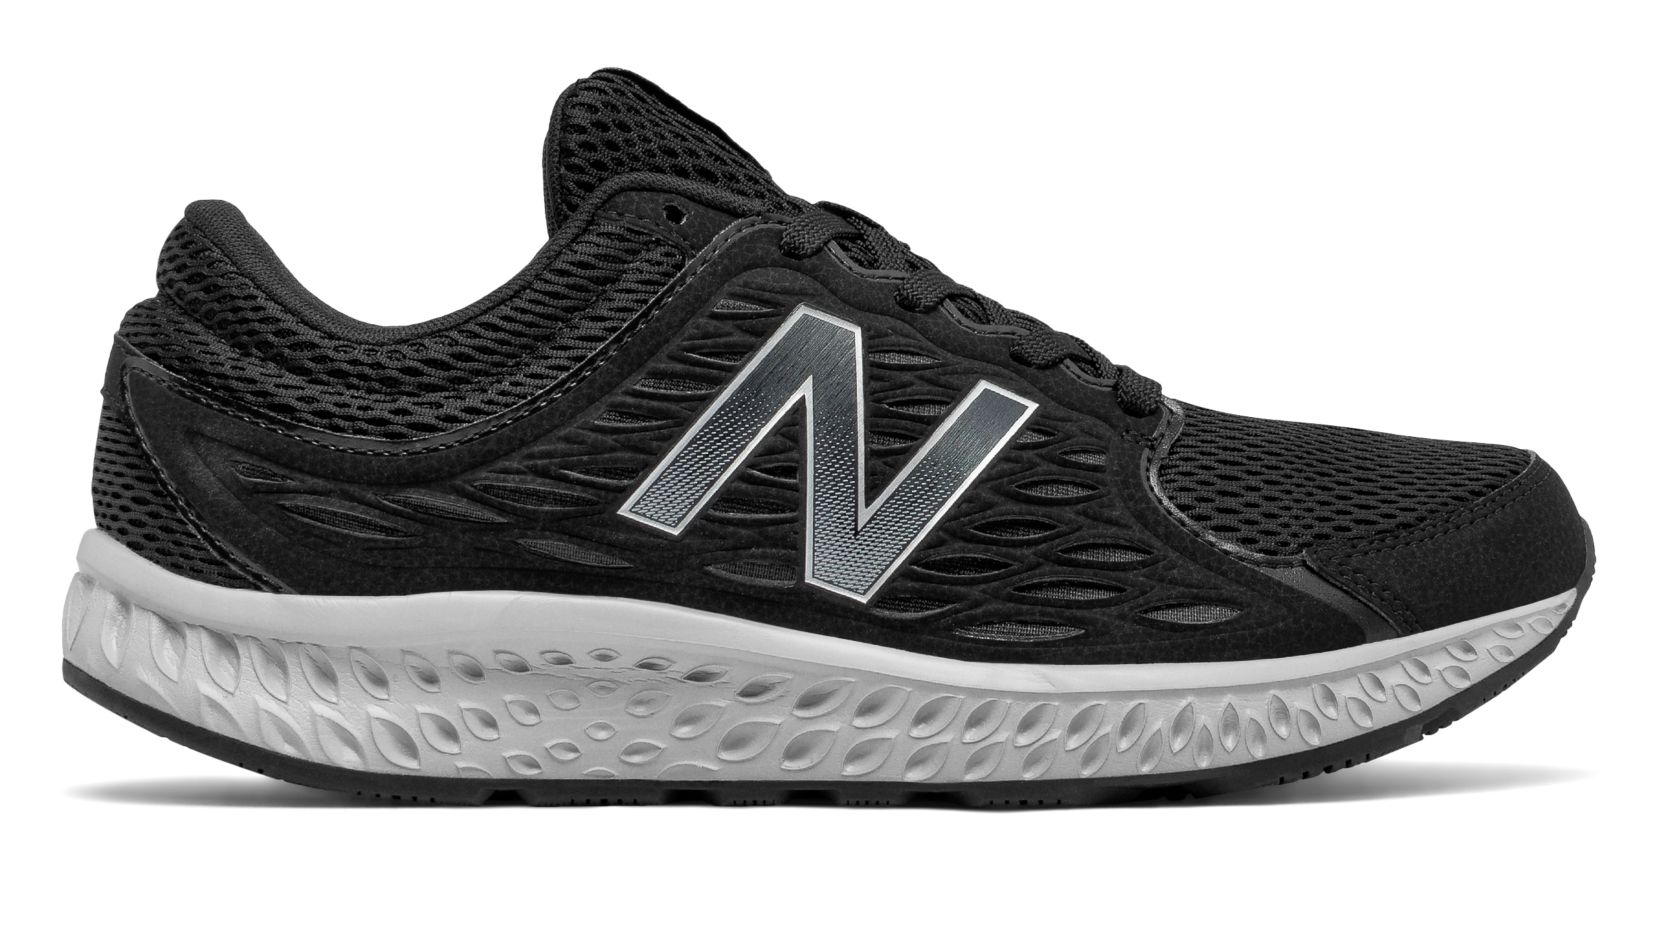 new balance men's 420v3 shoes black with grey & silver